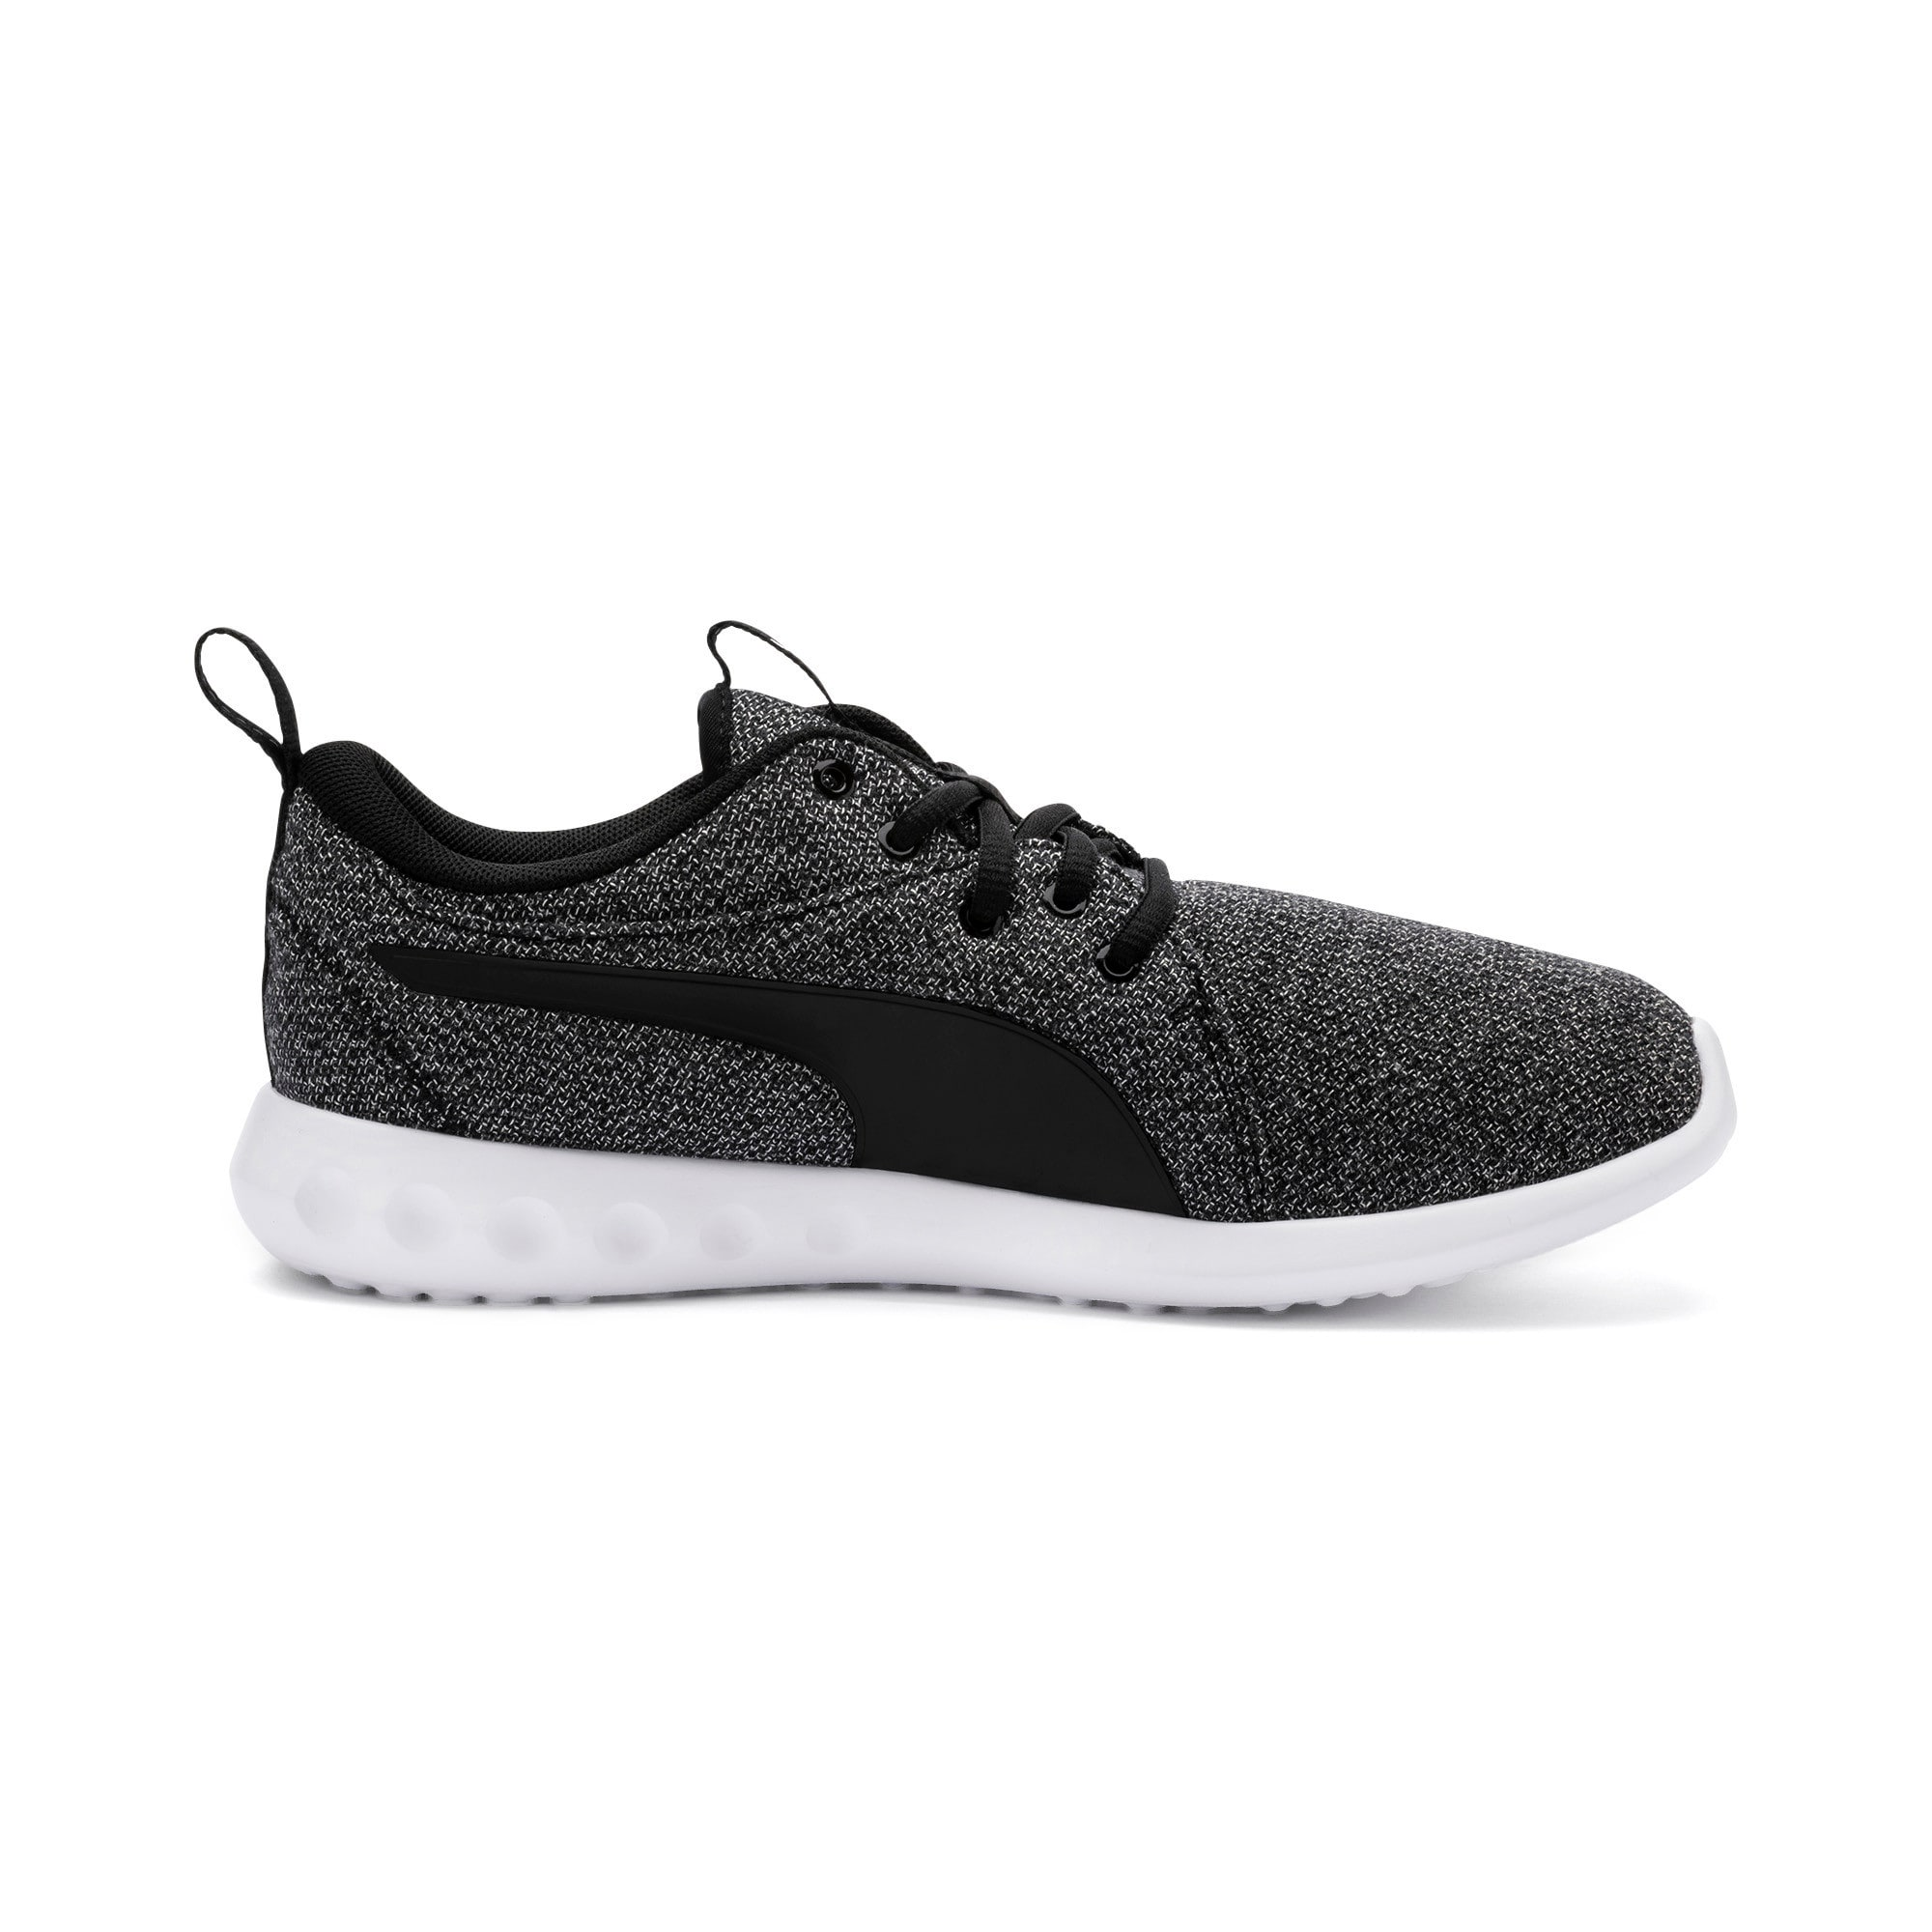 Thumbnail 5 of Carson 2 Knit Damen Sneaker, Puma Black-Puma White, medium